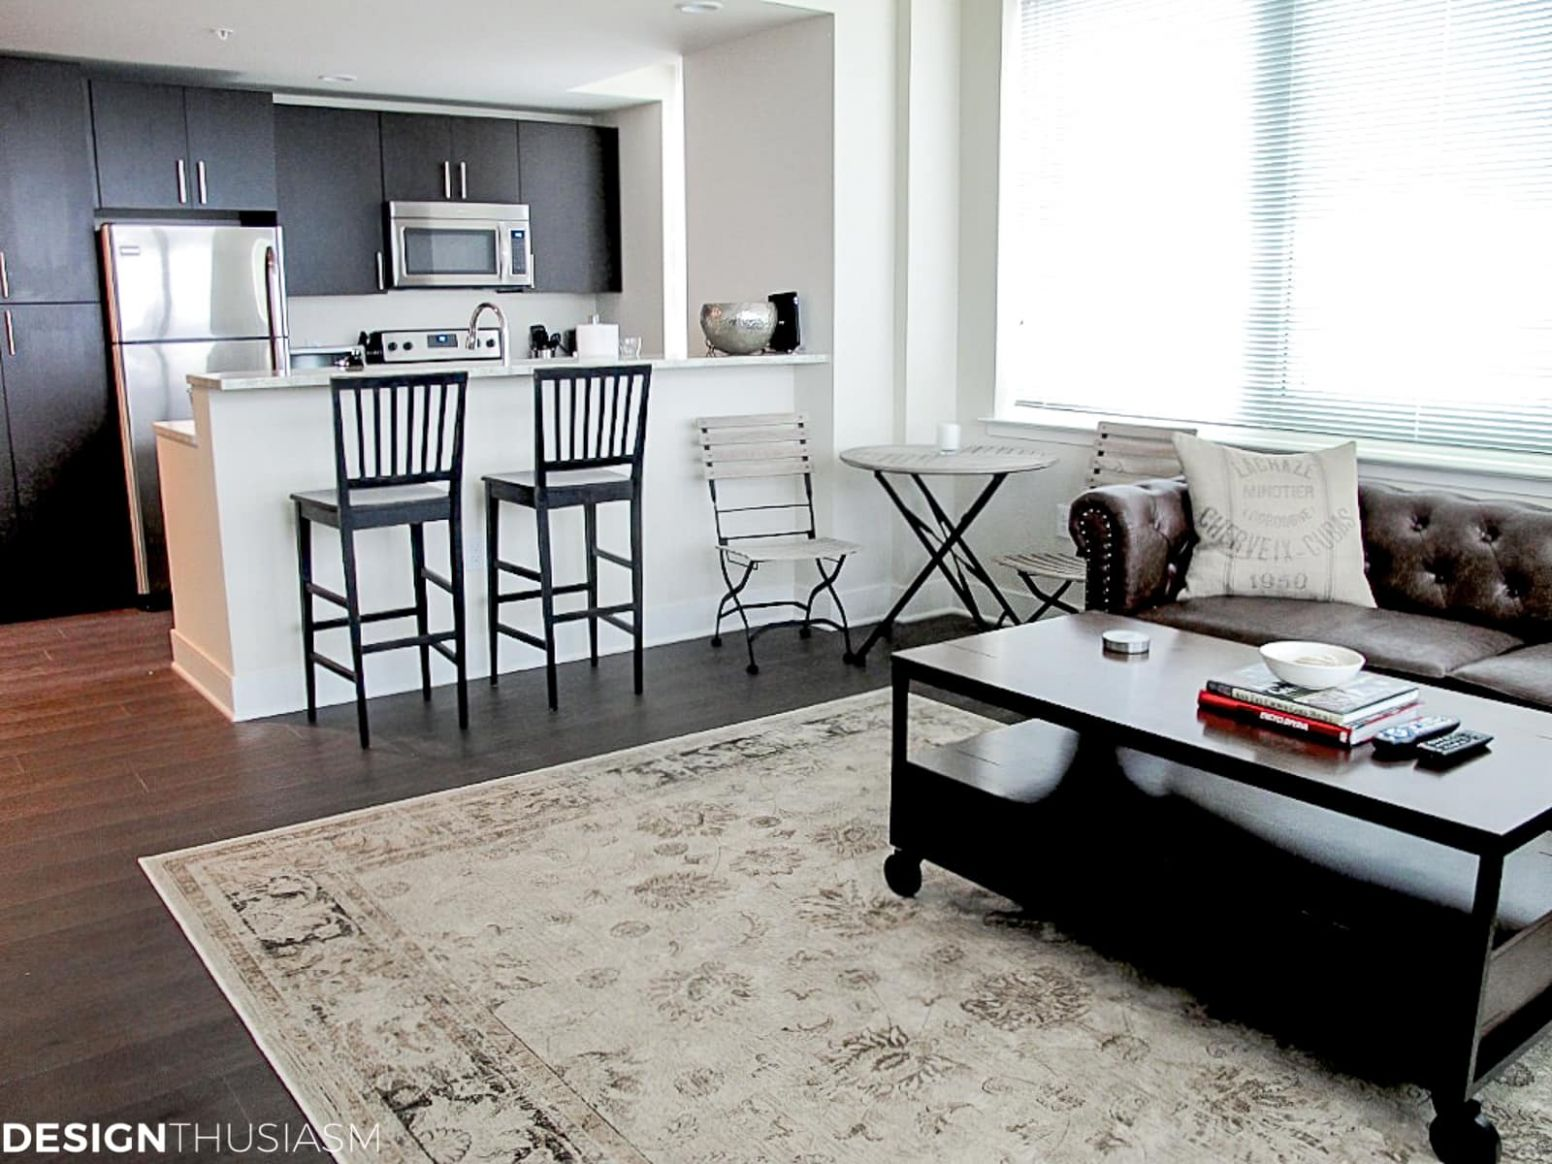 Bachelor Pad Ideas: Decorating a Young Man's Apartment on a Budget